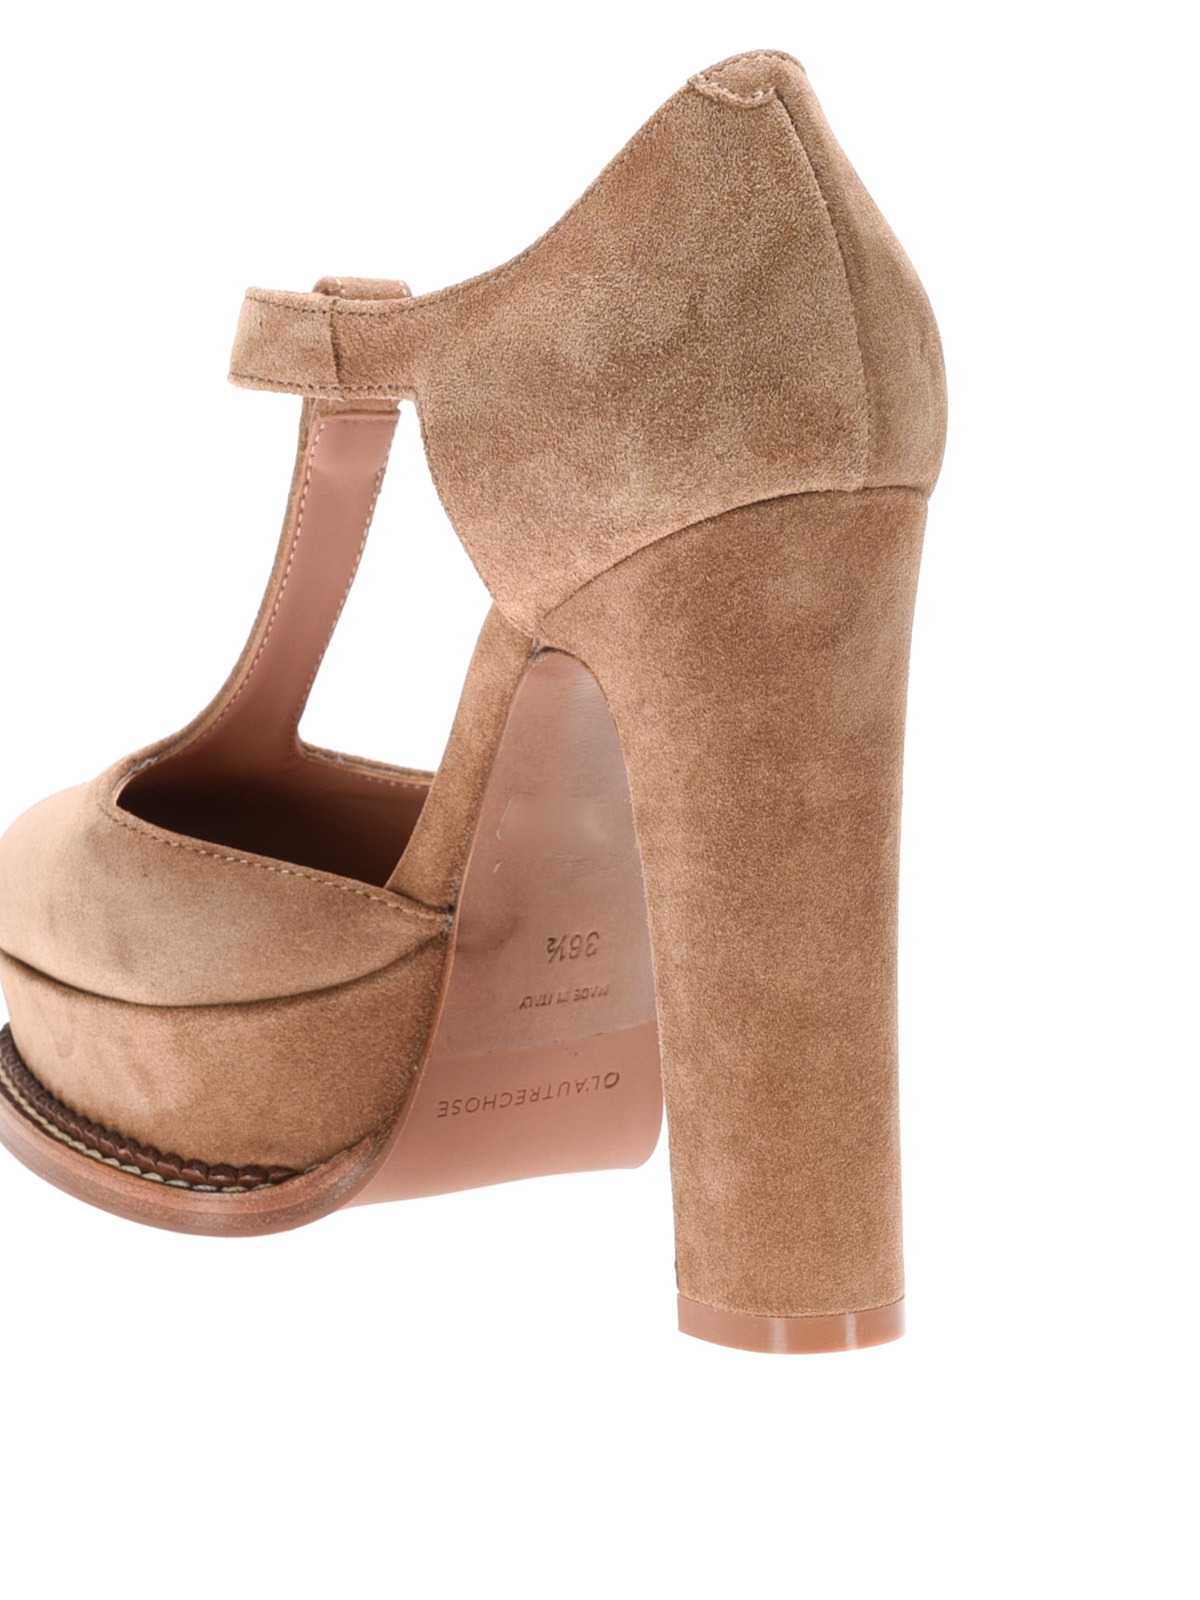 D collet d 39 orsay in crosta beige l 39 autre chose scarpe for Scarpe manolo blahnik shop on line